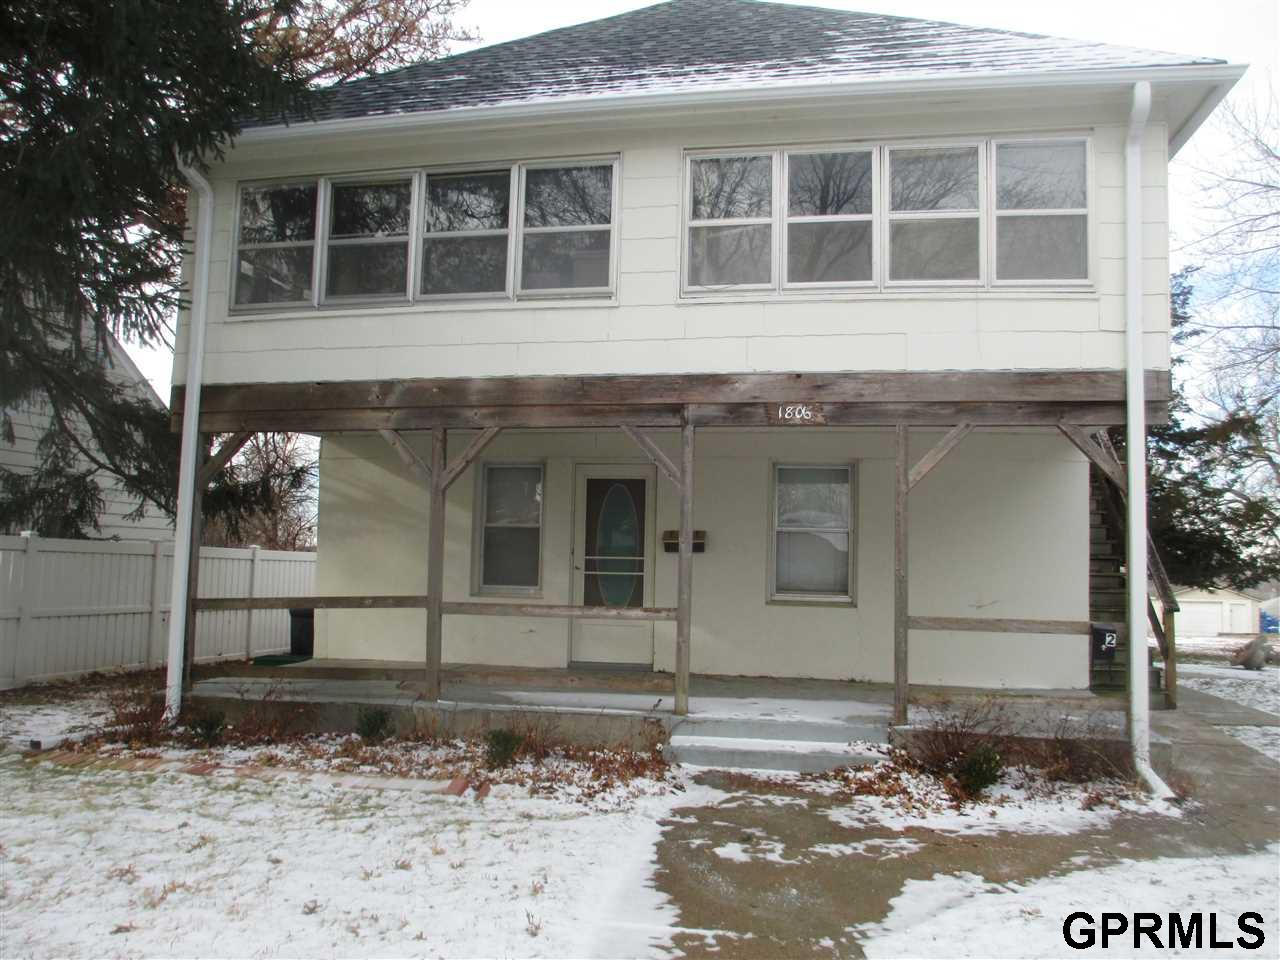 Rental Homes for Rent, ListingId:35478137, location: 1806 N 60 Omaha 68104